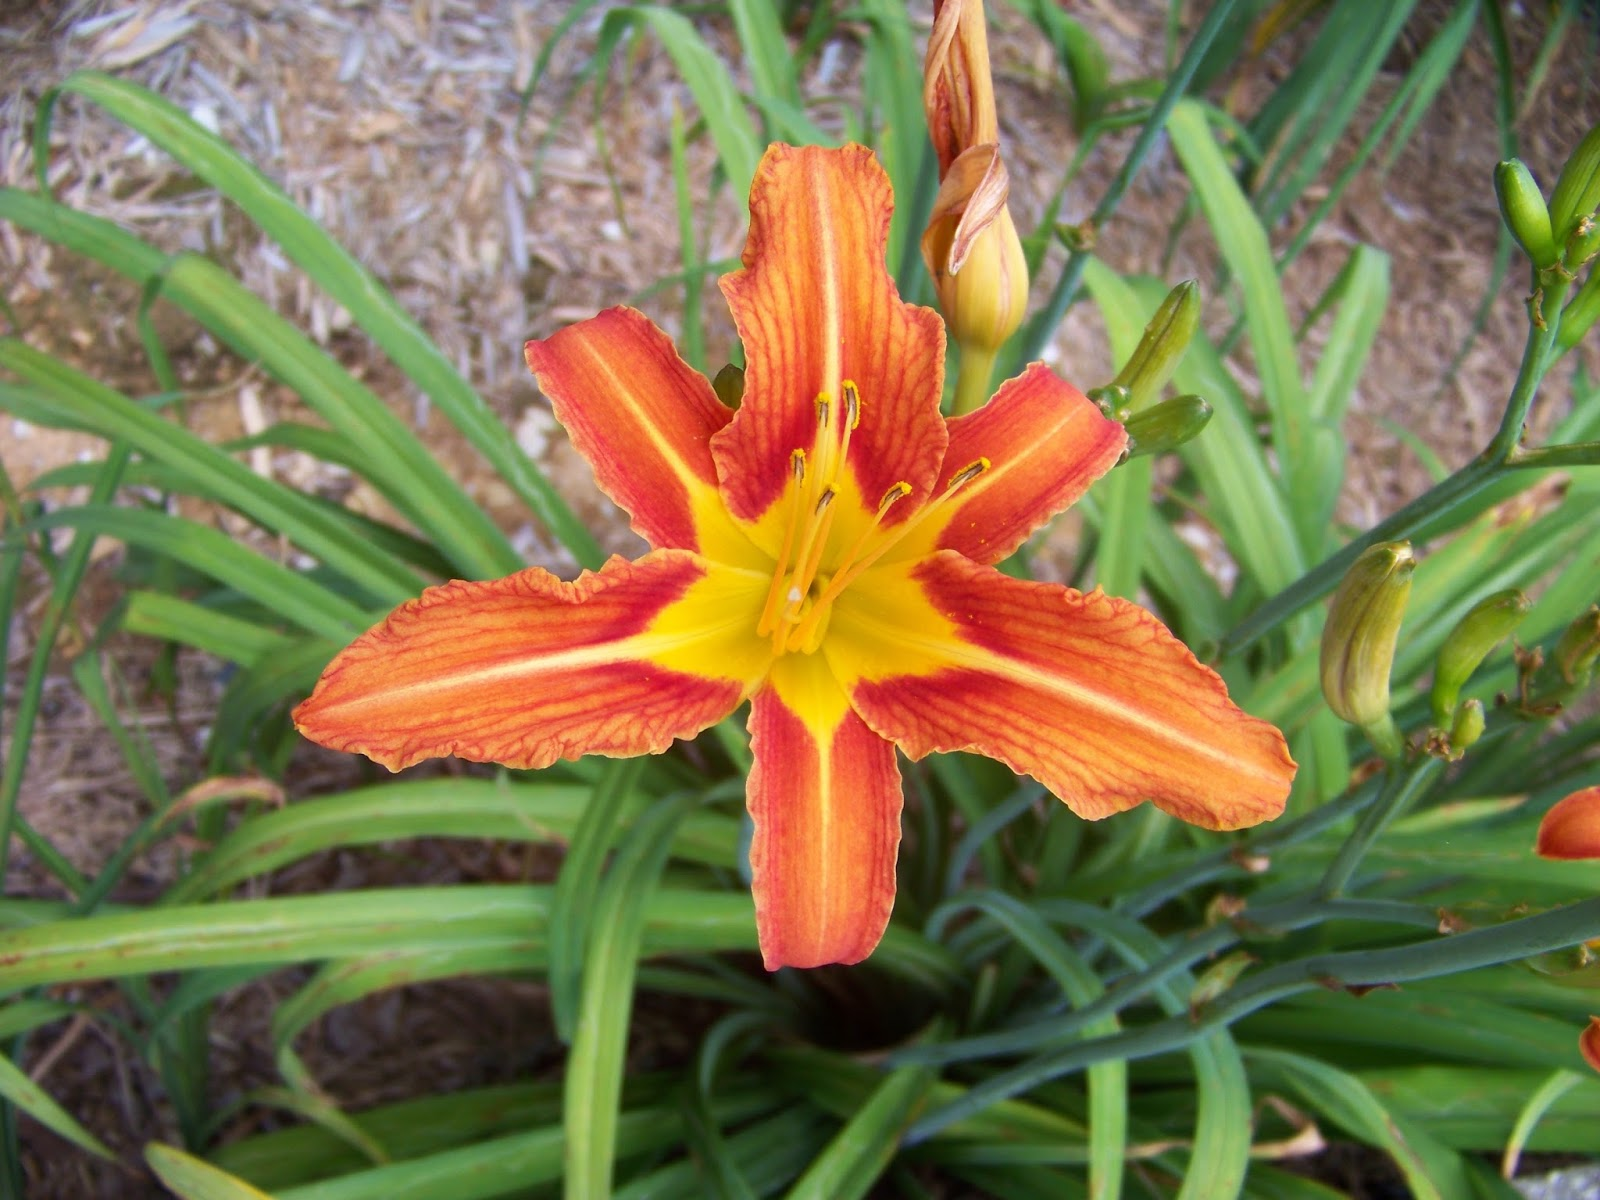 Daylilybreeder the daylily as a permaculture subject part 1 the daylily as a permaculture subject part 1 izmirmasajfo